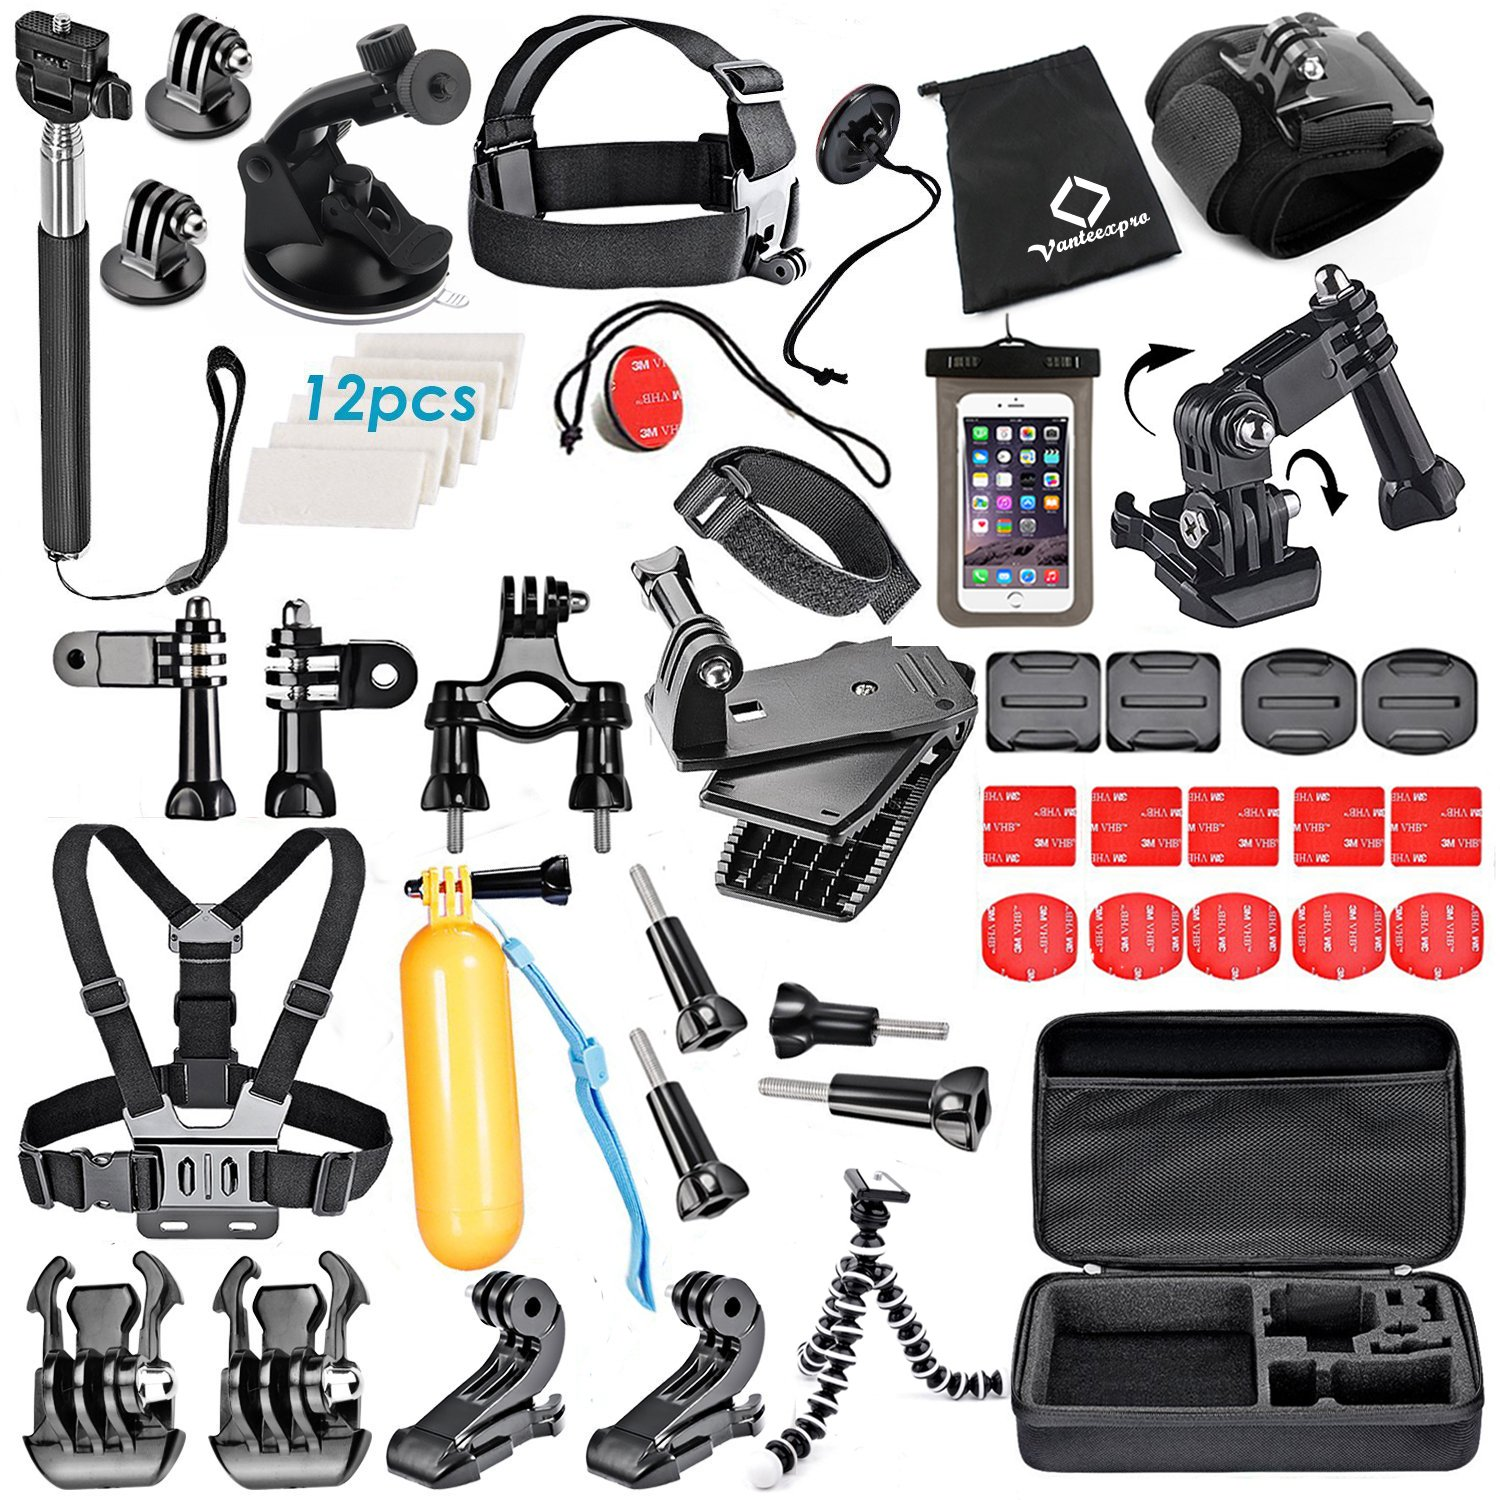 VanteexPro 56-in-1 Accessories Kit for Gopro Hero 5 4 3+ 3 2 1 Session Black Silver Sport Camera Accessories Bundle